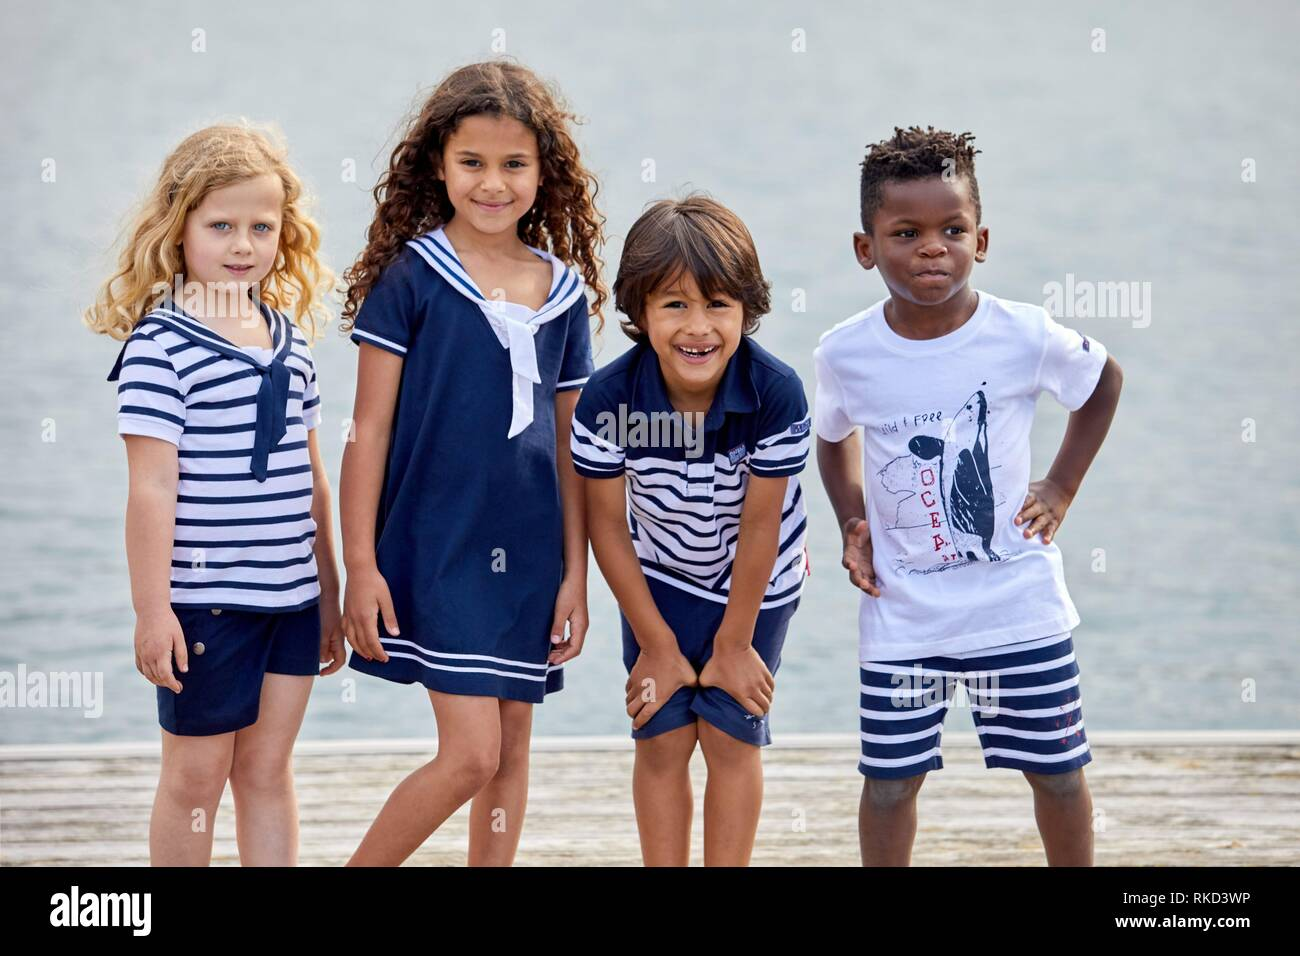 children with sea clothes